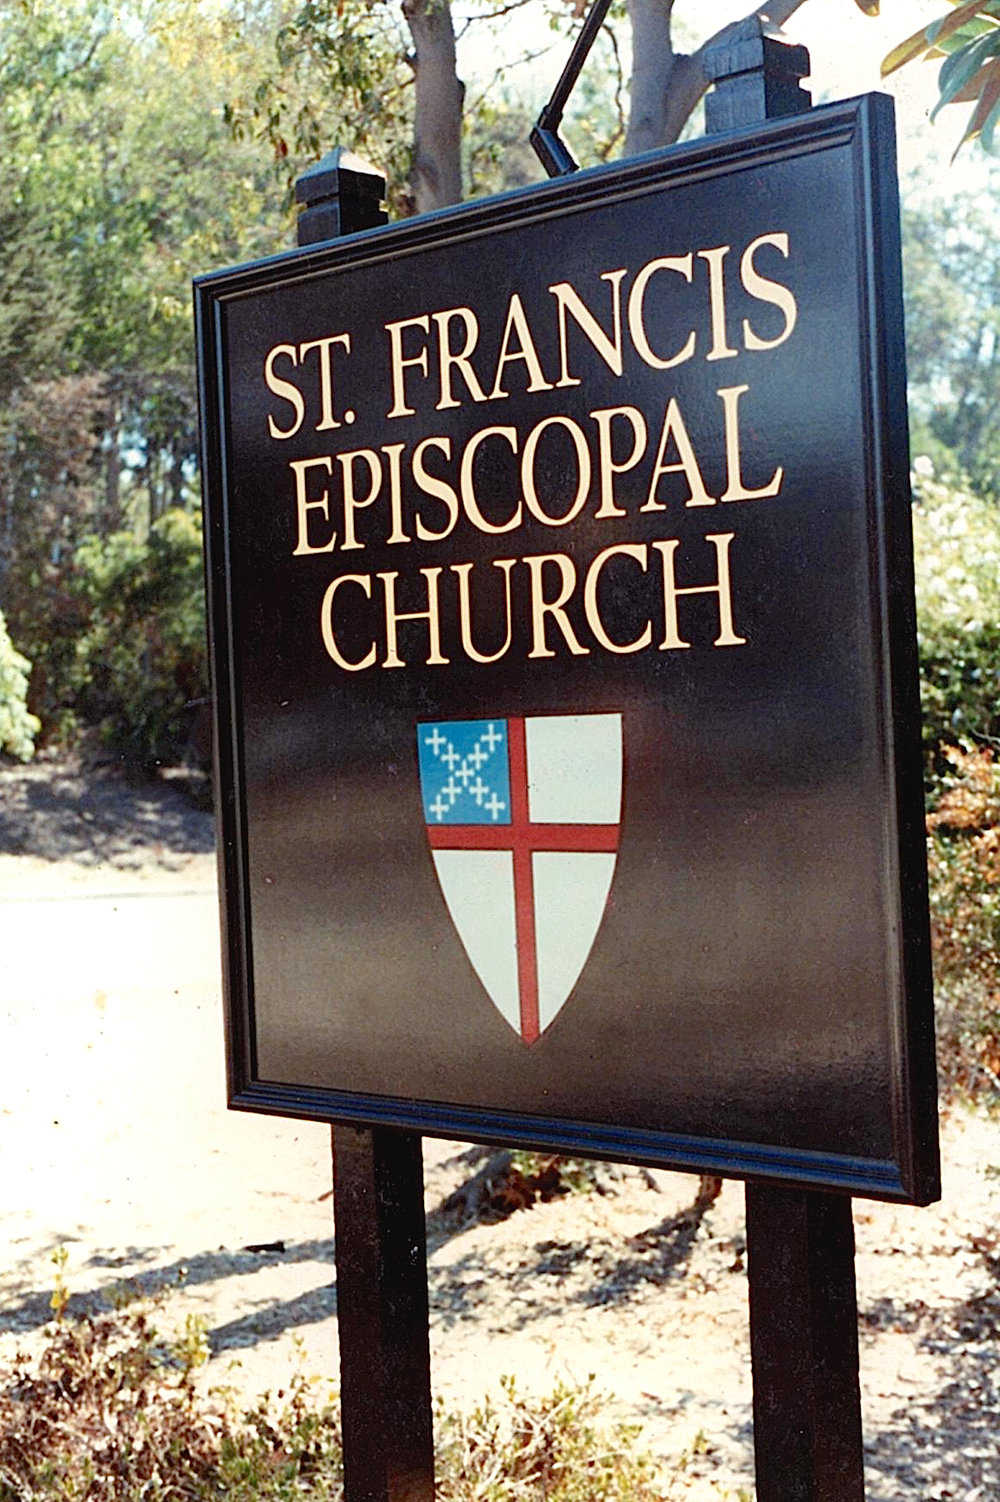 St. Francis Episcopal Church gold leaf lettering on sign panel